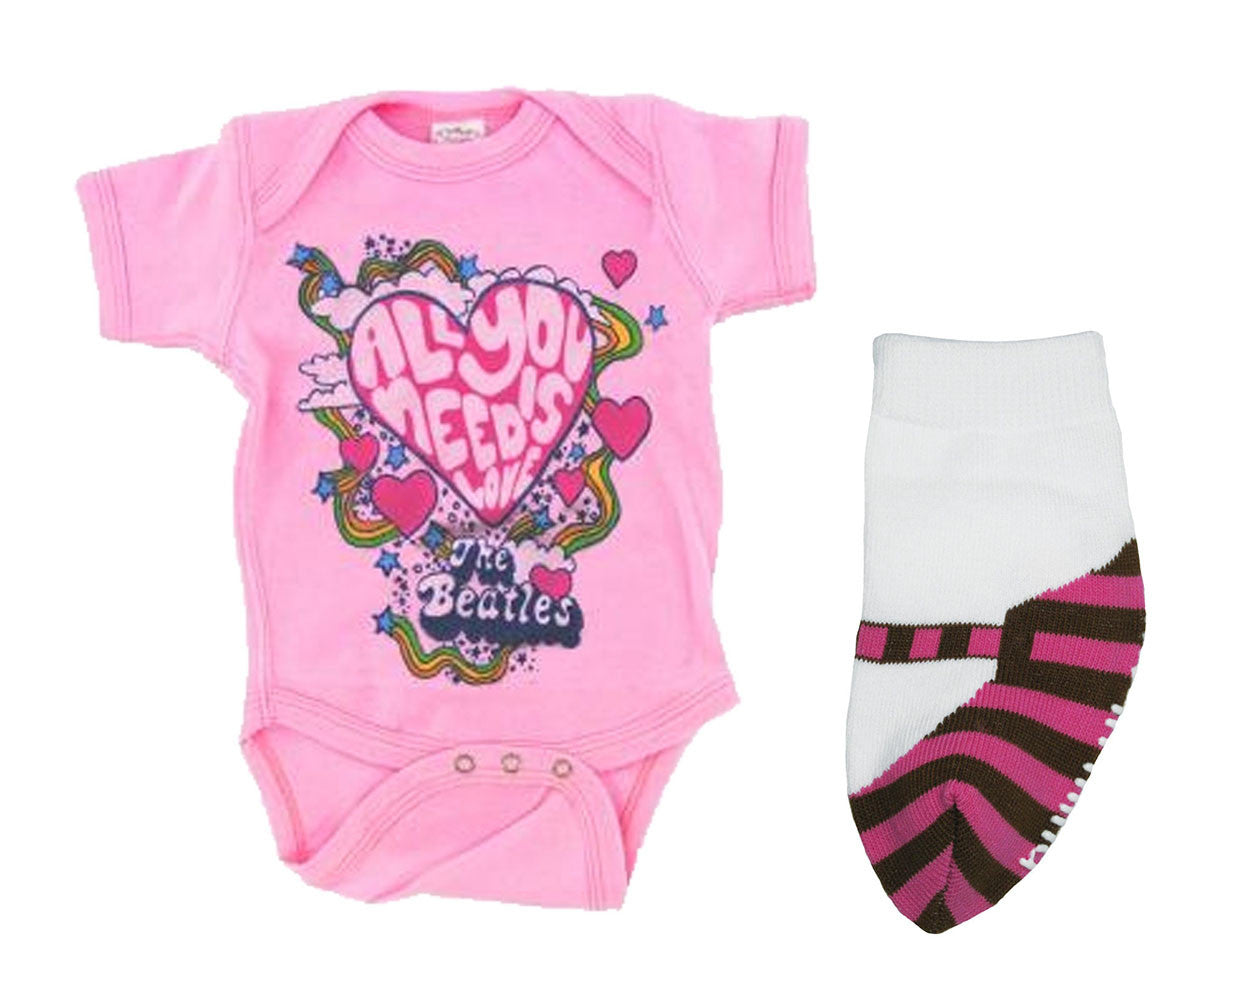 679b71f41 Rock Baby Clothes